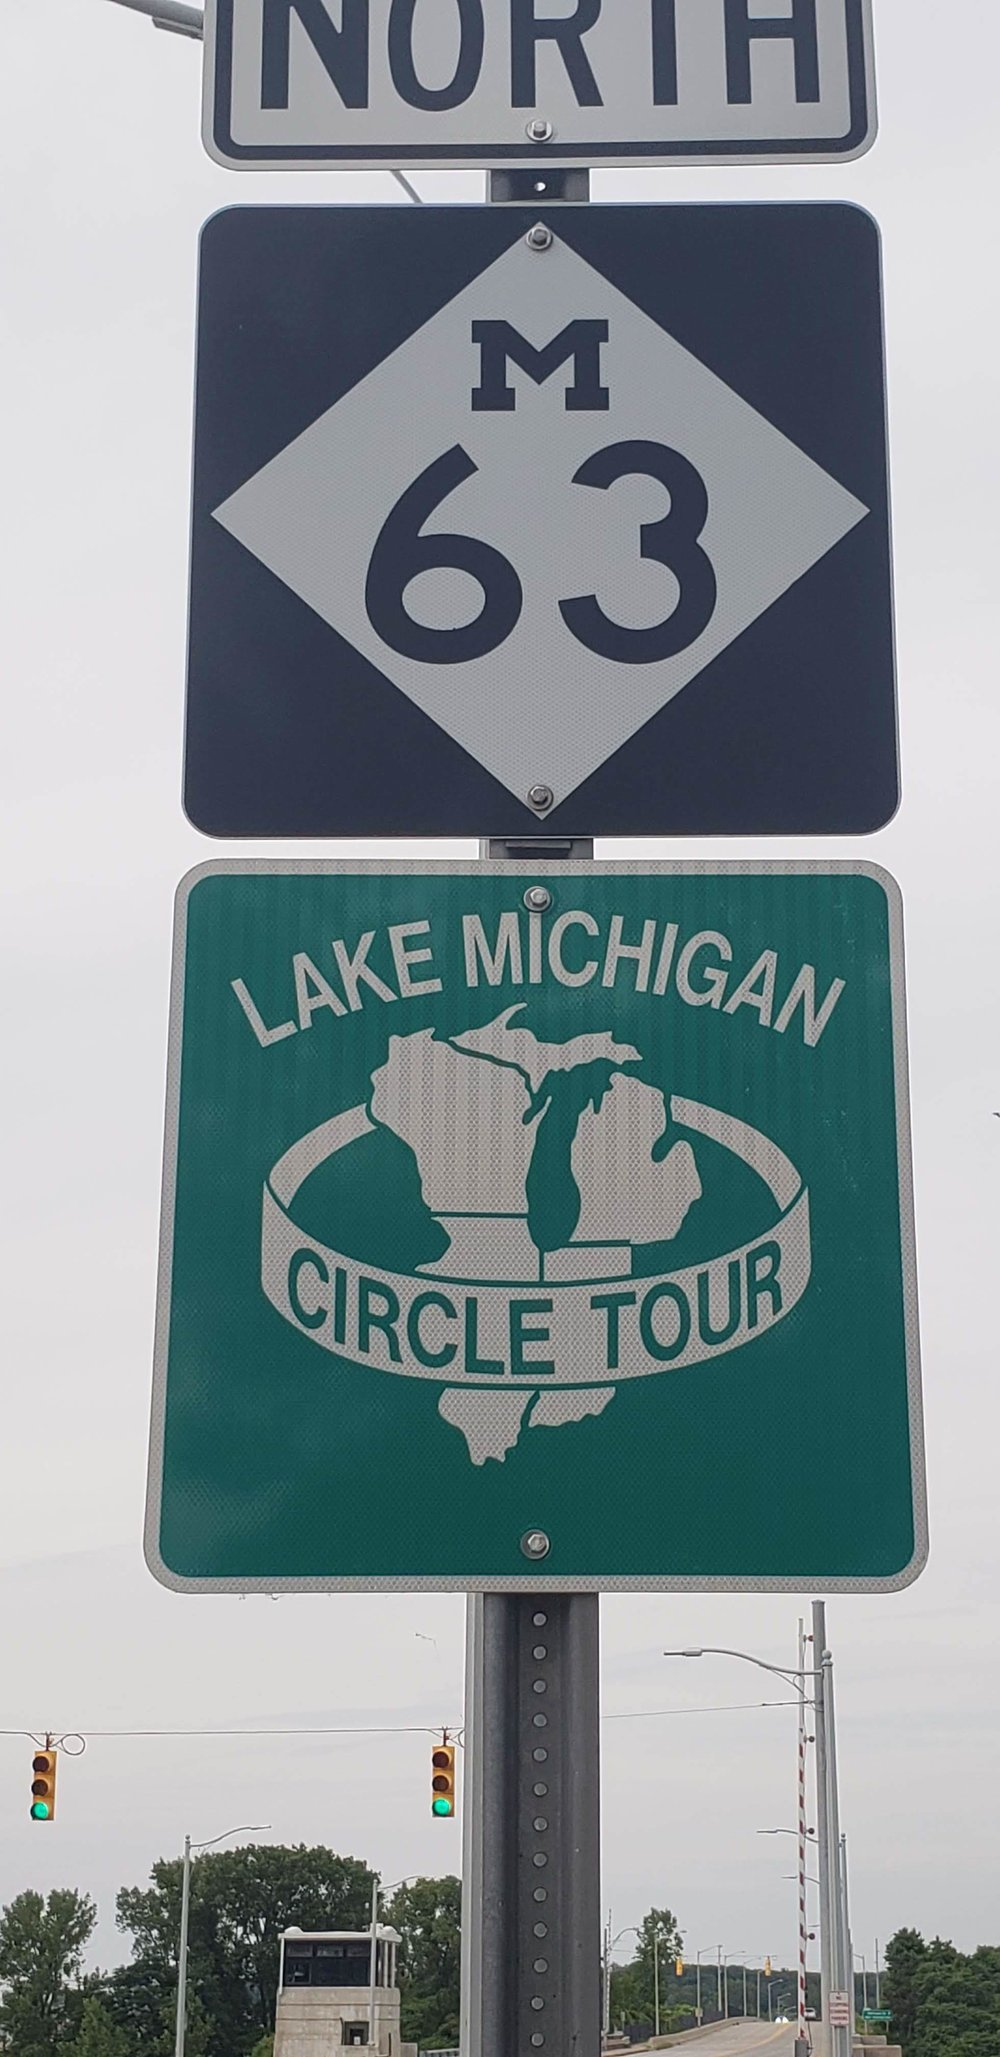 You can ride all around Lake Michigan.